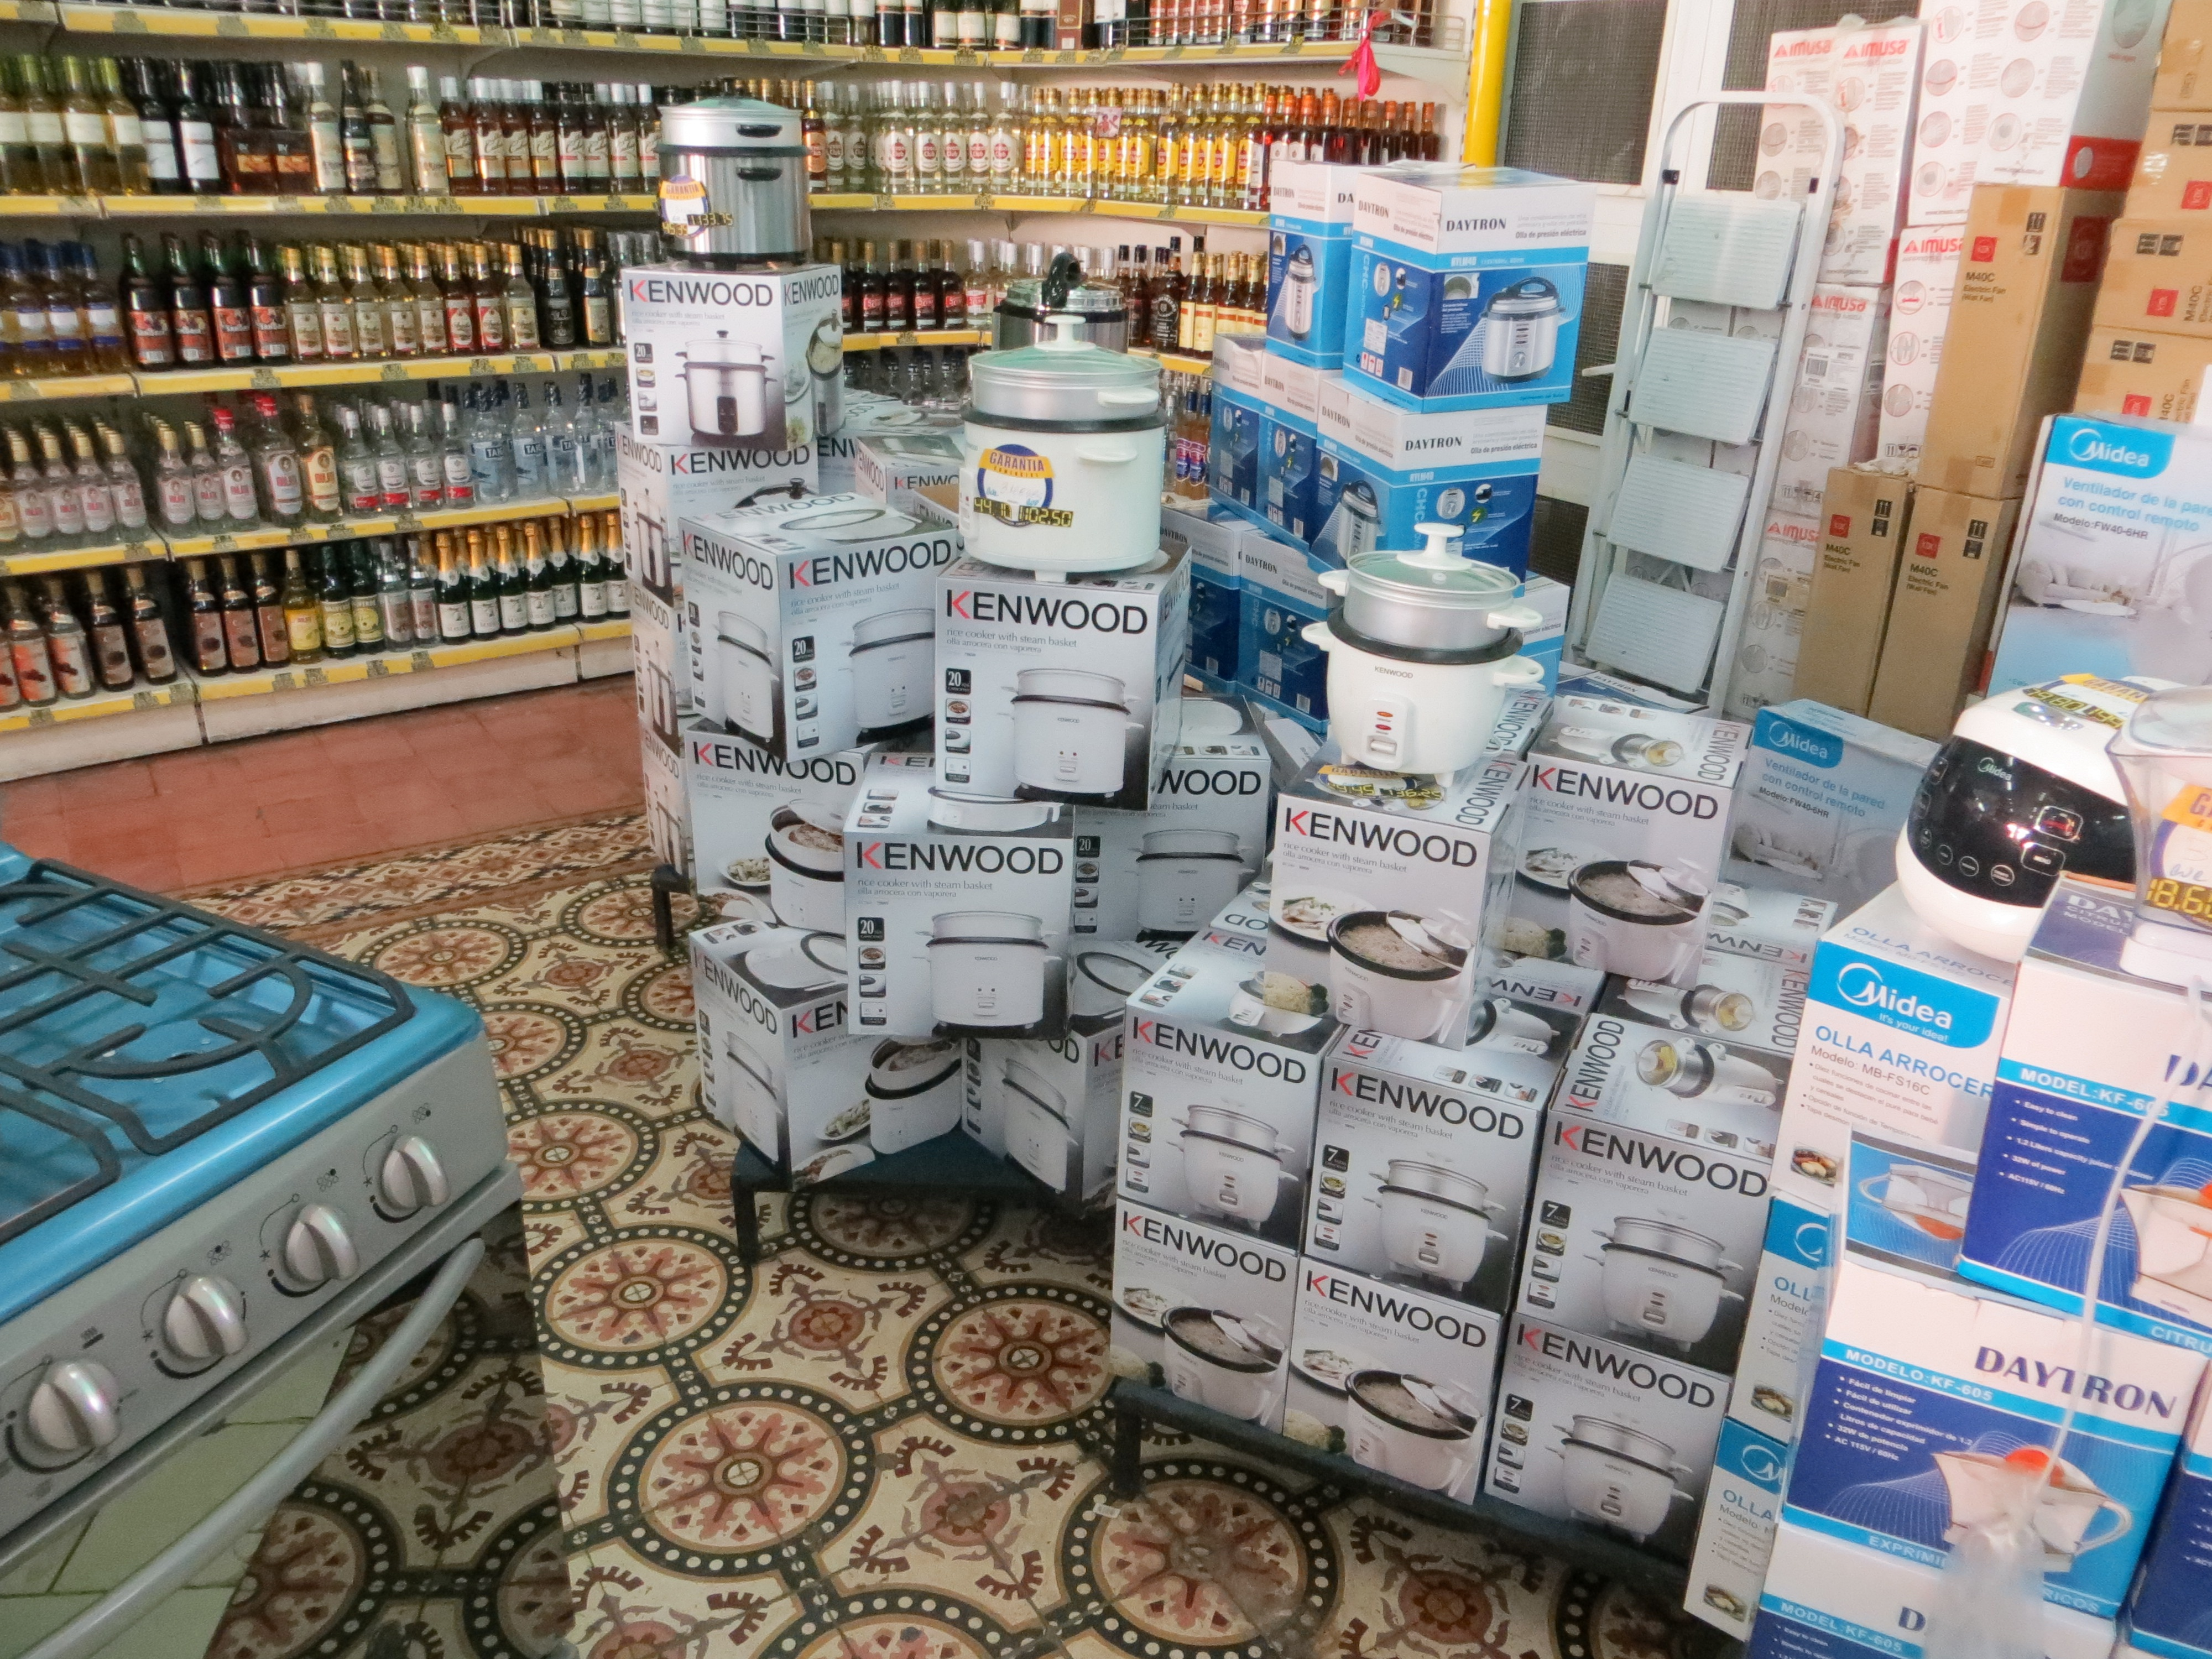 Rice cookers in Store in Cuba